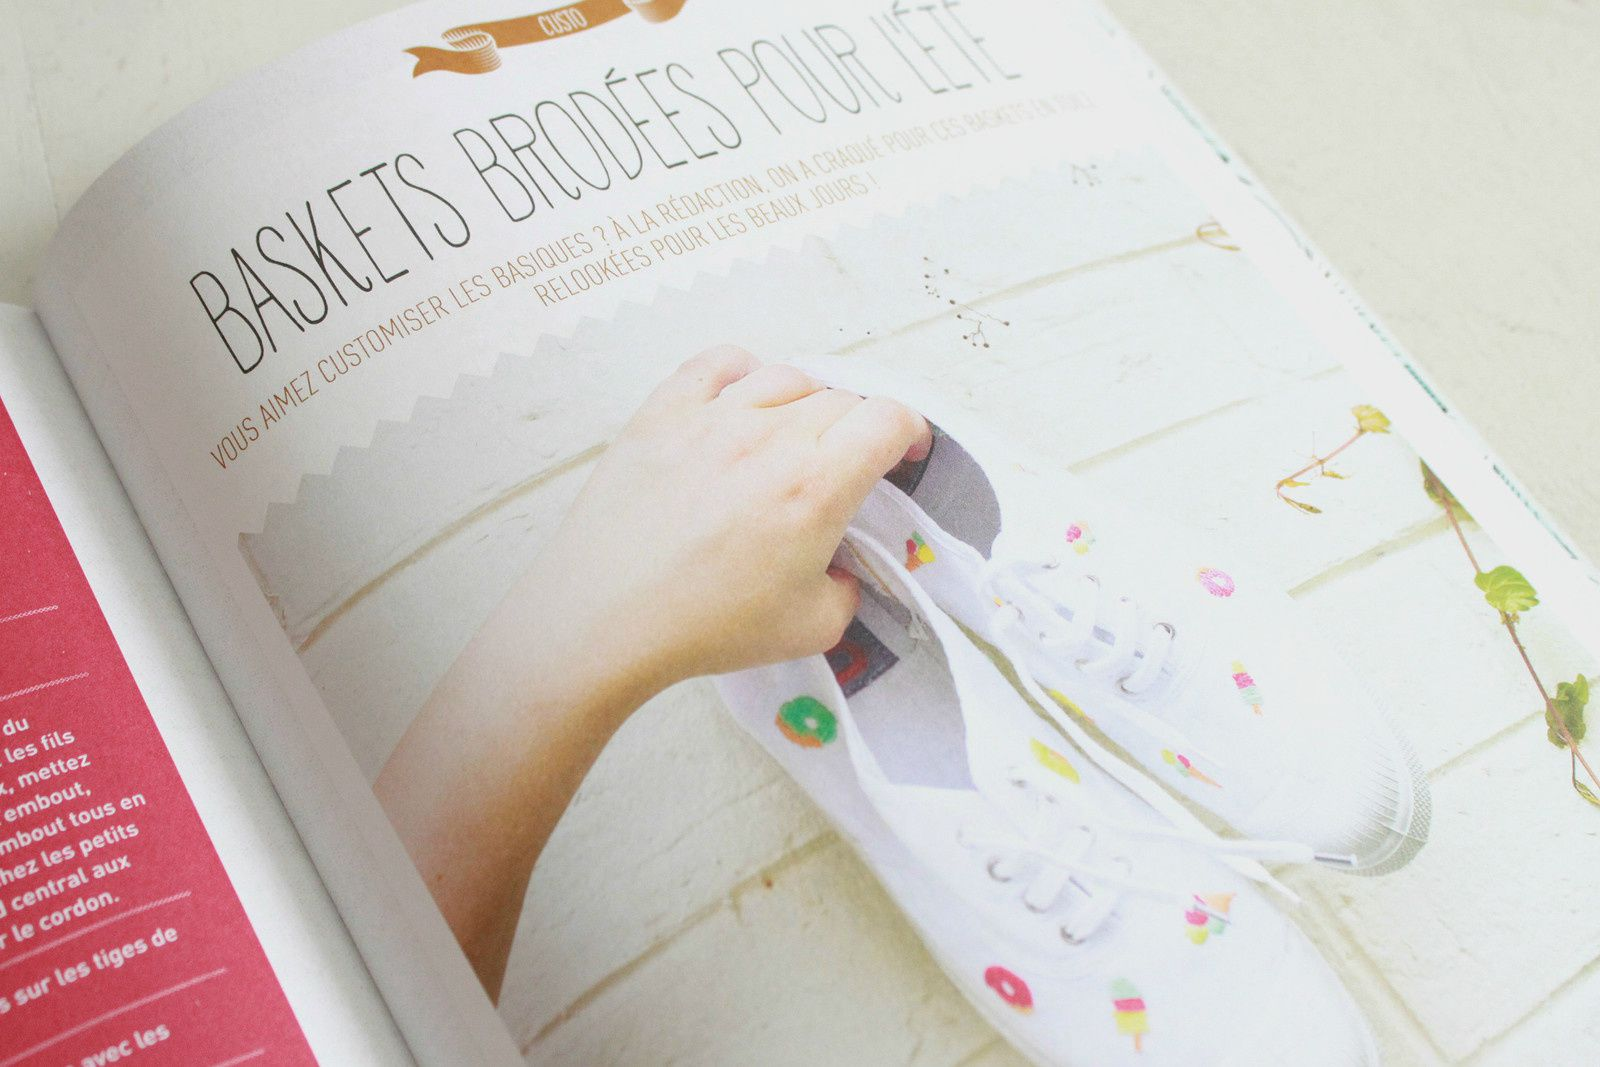 Abonnement magazine avec cadeau tablette tablette ardoiz for Abonnement magazine design